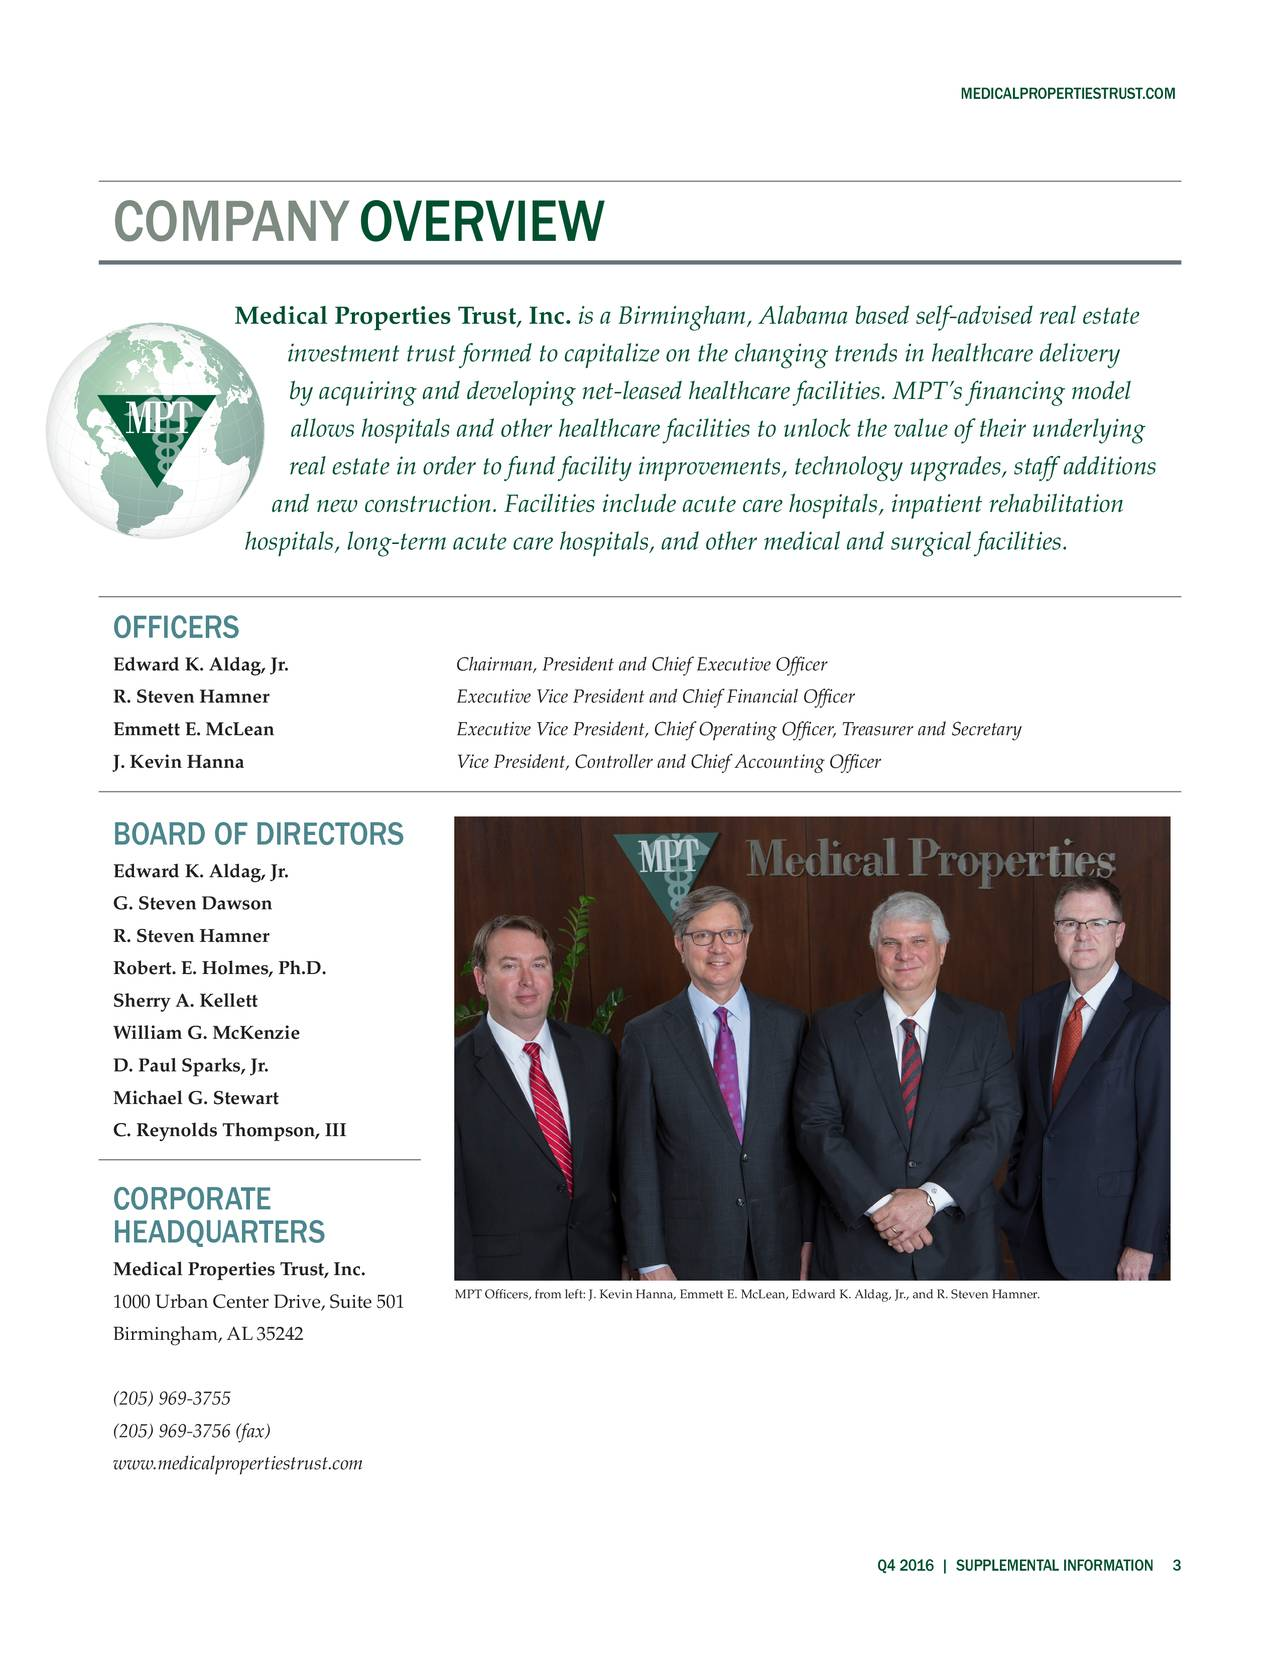 COMPANY OVERVIEW Medical Properties Trust, Inc. is a Birmingham, Alabama based self-advised real estate investment trust formed to capitalize on the changing trends in healthcare delivery by acquiring and developing net-leased healthcare facilities. MPTs financing model allows hospitals and other healthcare facilities to unlock the value of their underlying real estate in order to fund facility improvements, technology upgrades, staff additions and new construction. Facilities include acute care hospitals, inpatient rehabilitation hospitals, long-term acute care hospitals, and other medical and surgical facilities. OFFICERS Edward K. Aldag, Jr. Chairman, President and Chief Executive Officer R. Steven Hamner Executive Vice President and Chief Financial Officer Emmett E. McLean Executive Vice President, Chief Operating Officer, Treasurer and Secretary J. Kevin Hanna Vice President, Controller and Chief Accounting Officer BOARD OF DIRECTORS Edward K. Aldag, Jr. G. Steven Dawson R. Steven Hamner Robert. E. Holmes, Ph.D. Sherry A. Kellett William G. McKenzie D. Paul Sparks, Jr. Michael G. Stewart C. Reynolds Thompson, III CORPORATE HEADQUARTERS Medical Properties Trust, Inc. 1000 Urban Center Drive, Suite 501 Officers, from left: J. Kevin Hanna, Emmett E. McLean, Edward K. Aldag, Jr., and R. Steven Hamner. Birmingham, AL 35242 (205) 969-3755 (205) 969-3756 (fax) www.medicalpropertiestrust.com Q4 2016 | SUPPLEMENTAL INFORMATIO3N